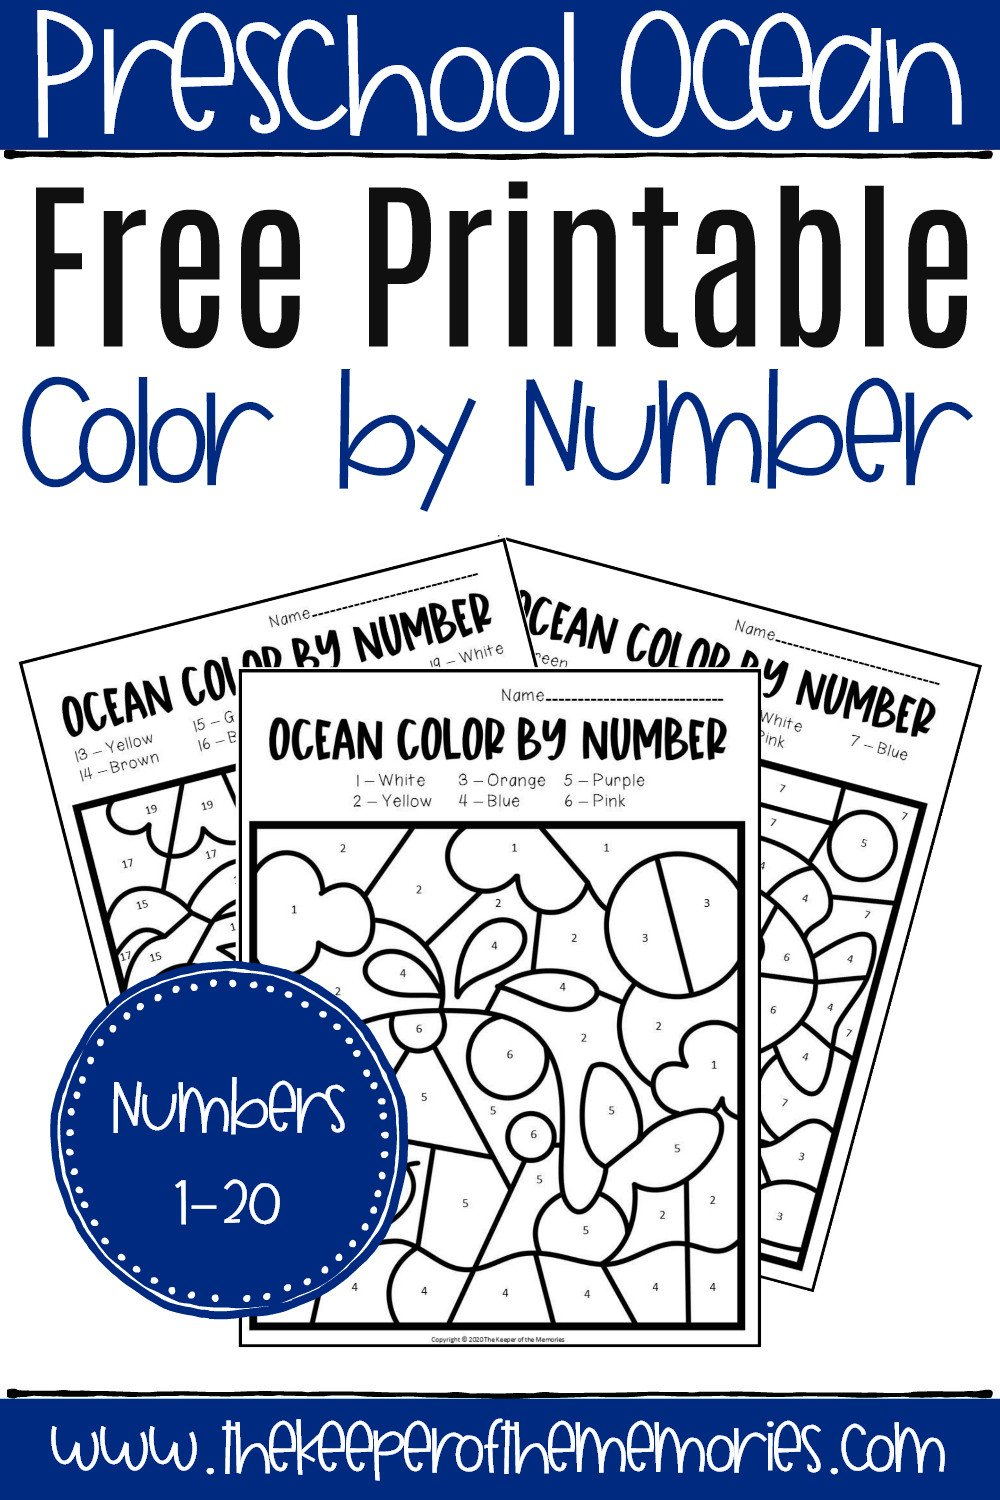 Free Color by Numbers Worksheets Free Printable Color by Number Ocean Preschool Worksheets